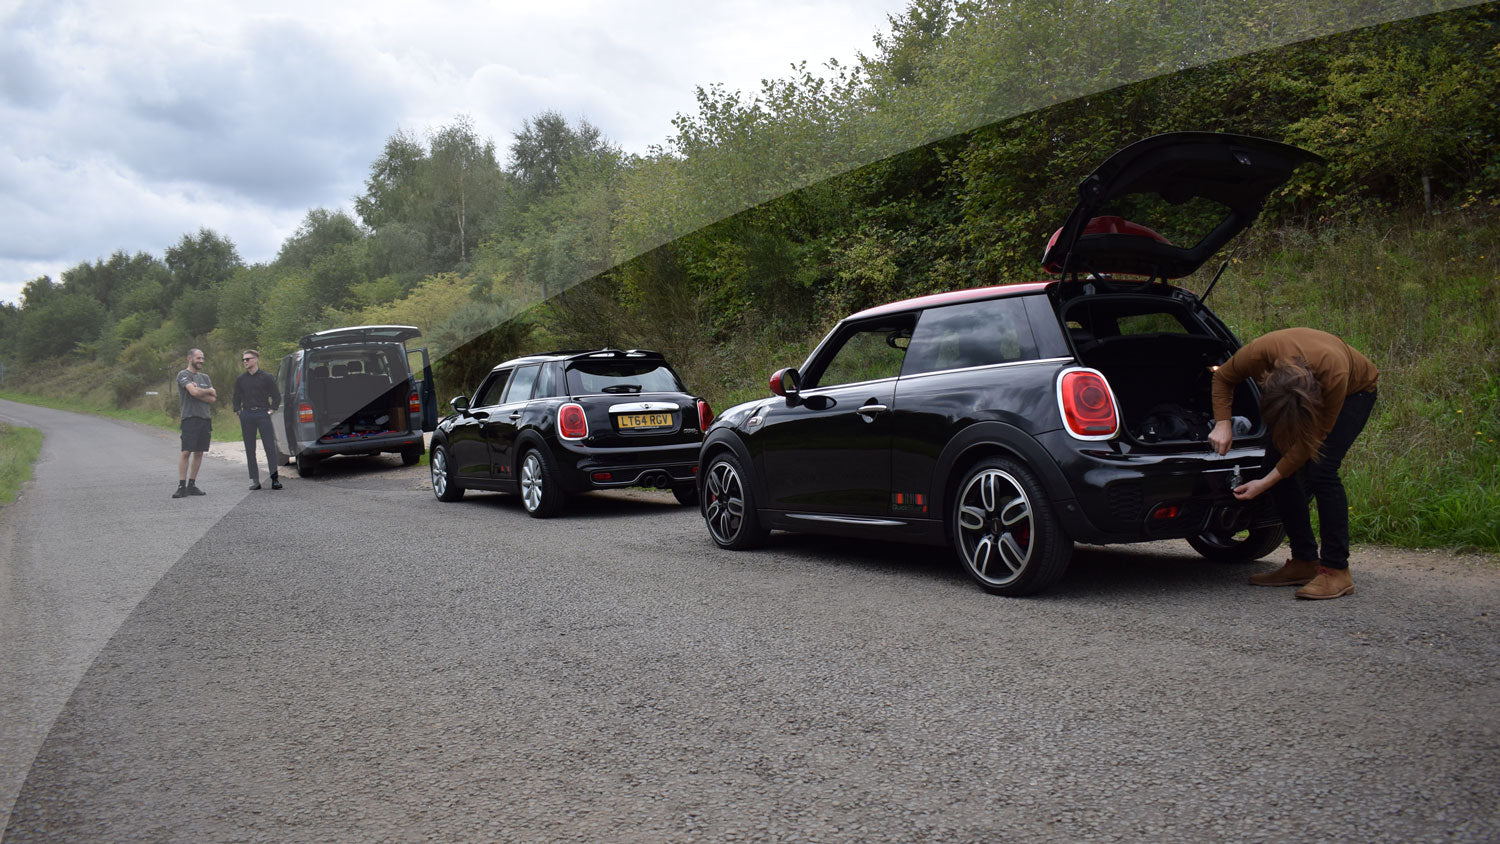 MINI Cooper S vs JCW Exhaust Shoot Out!